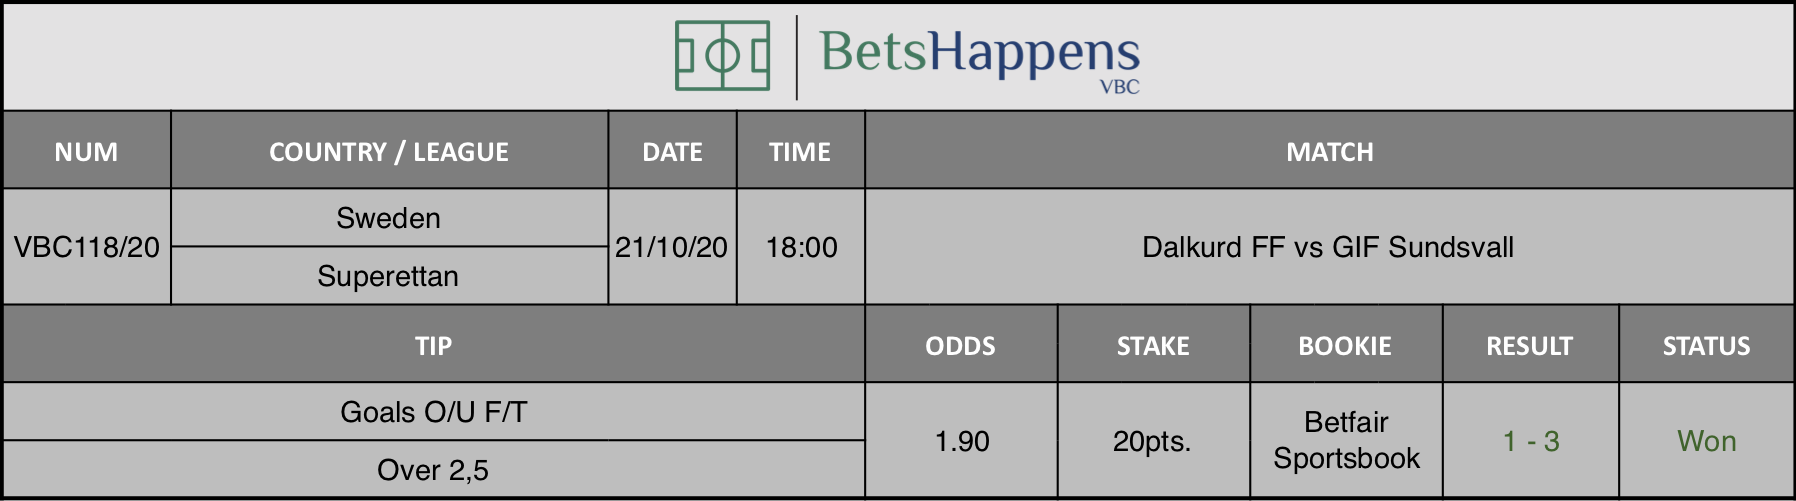 Results of our advice for the Dalkurd FF vs GIF Sundsvall match in which Goals O / U F / T Over 2,5 is recommended.